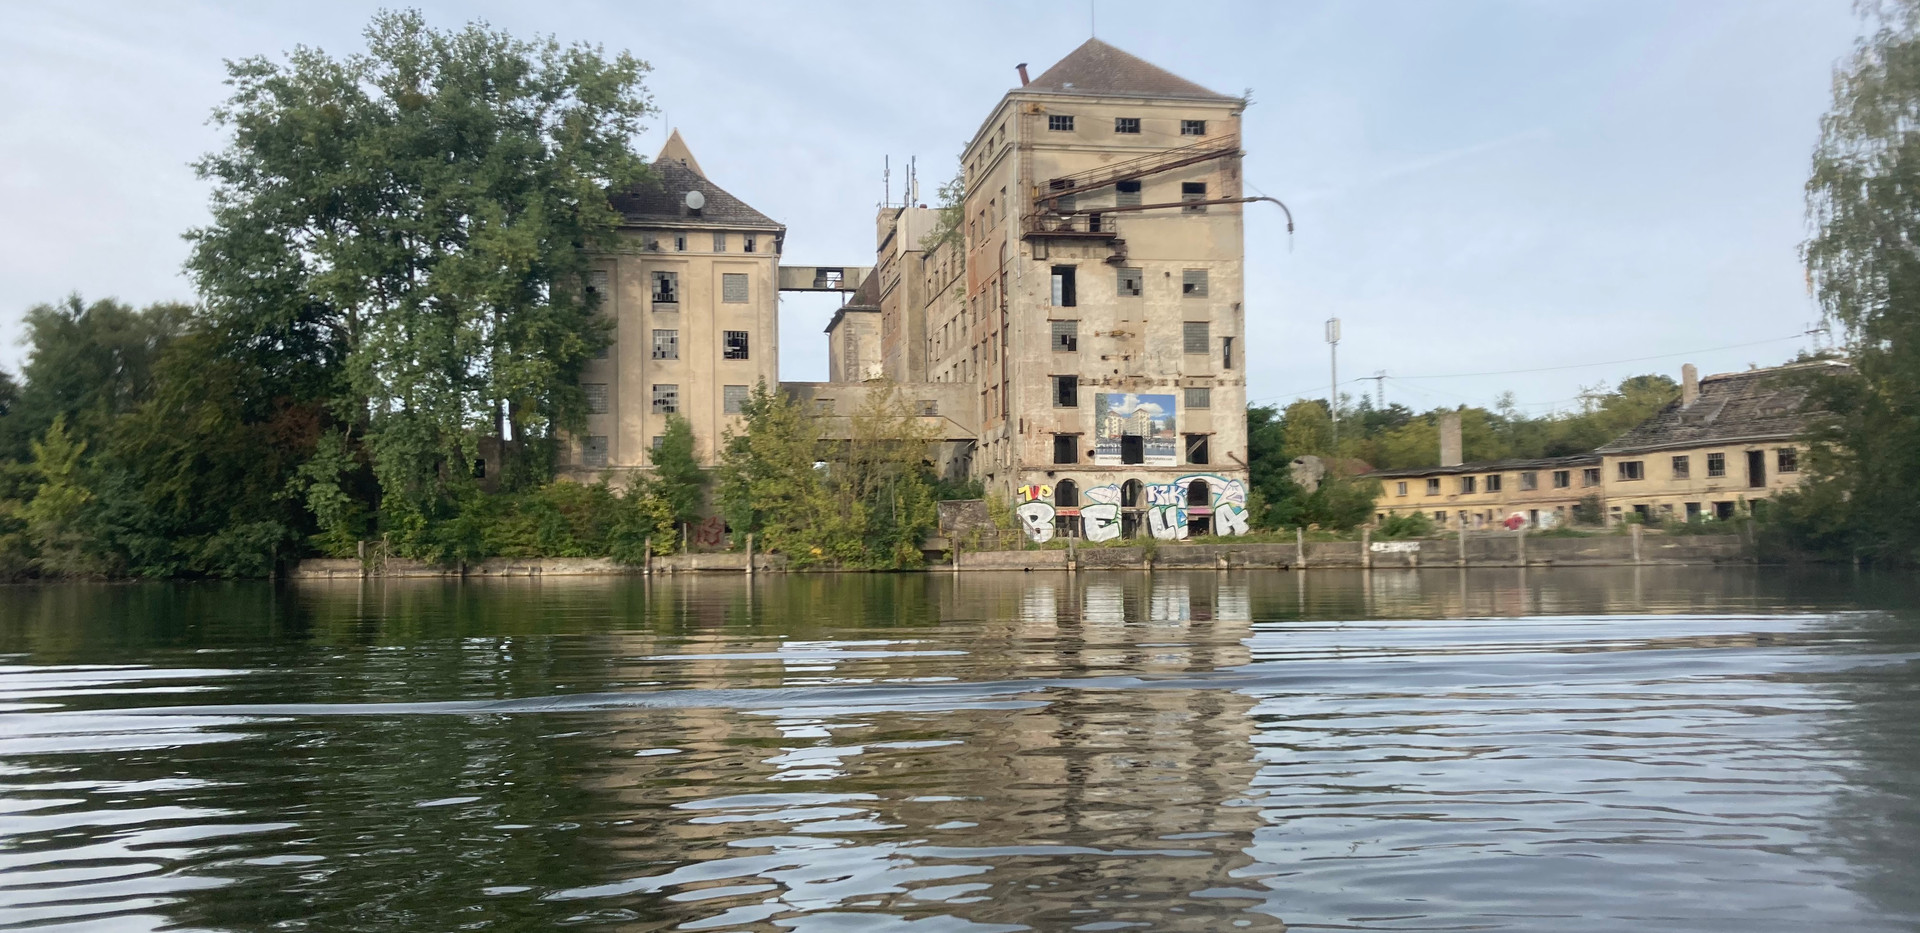 Interesting abandoned factory on the edge of the lake